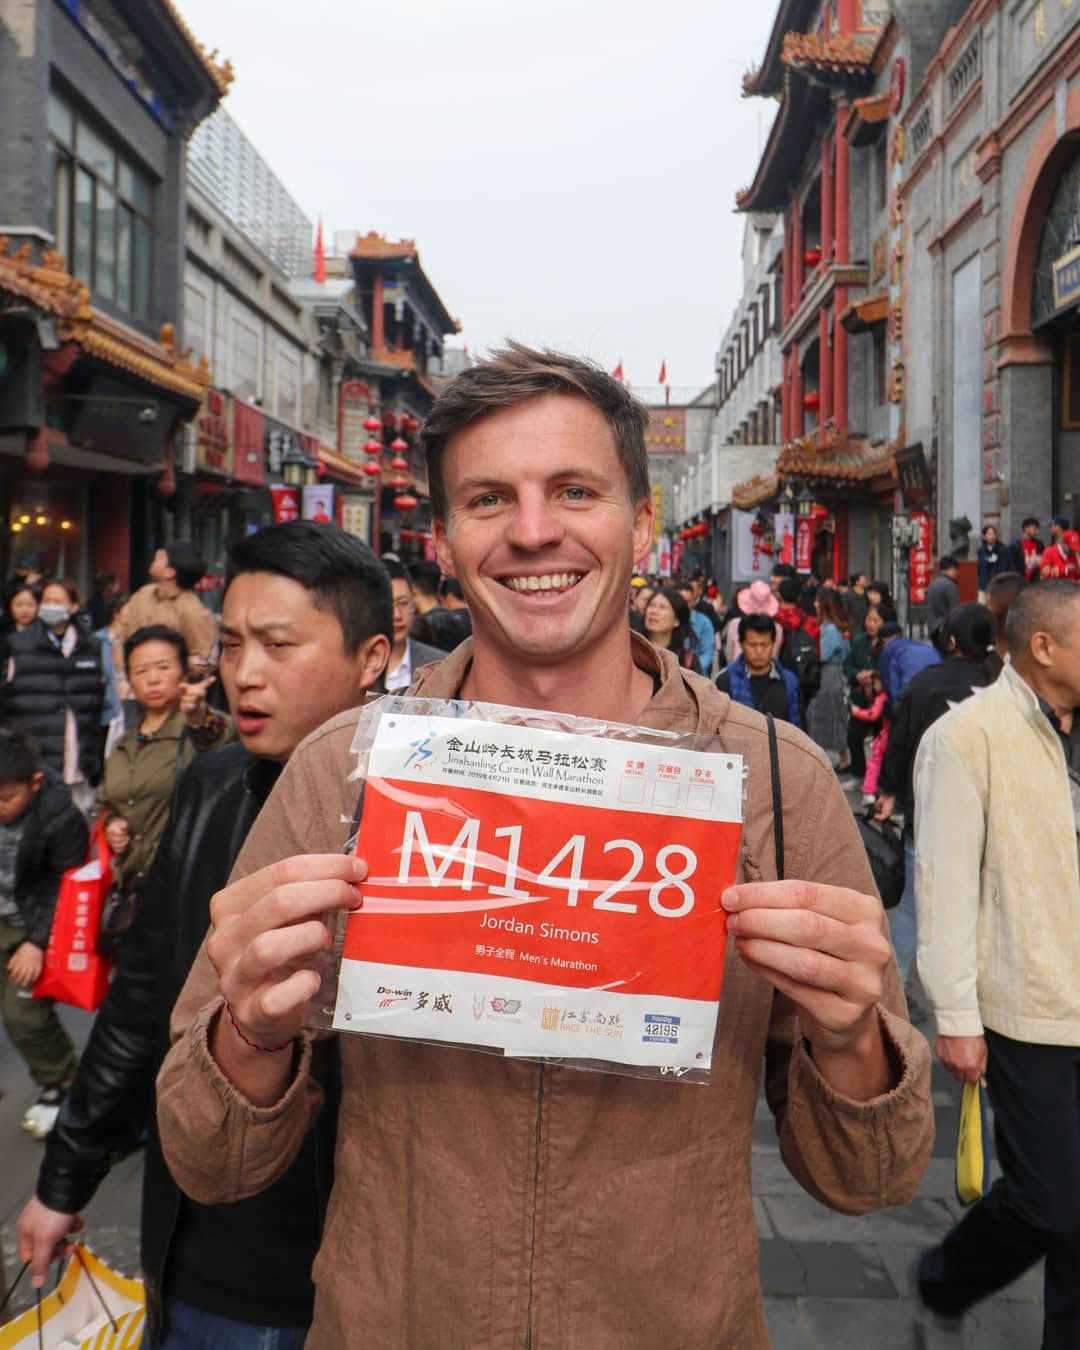 How to Travel the World Full Time - Great Wall Marathon